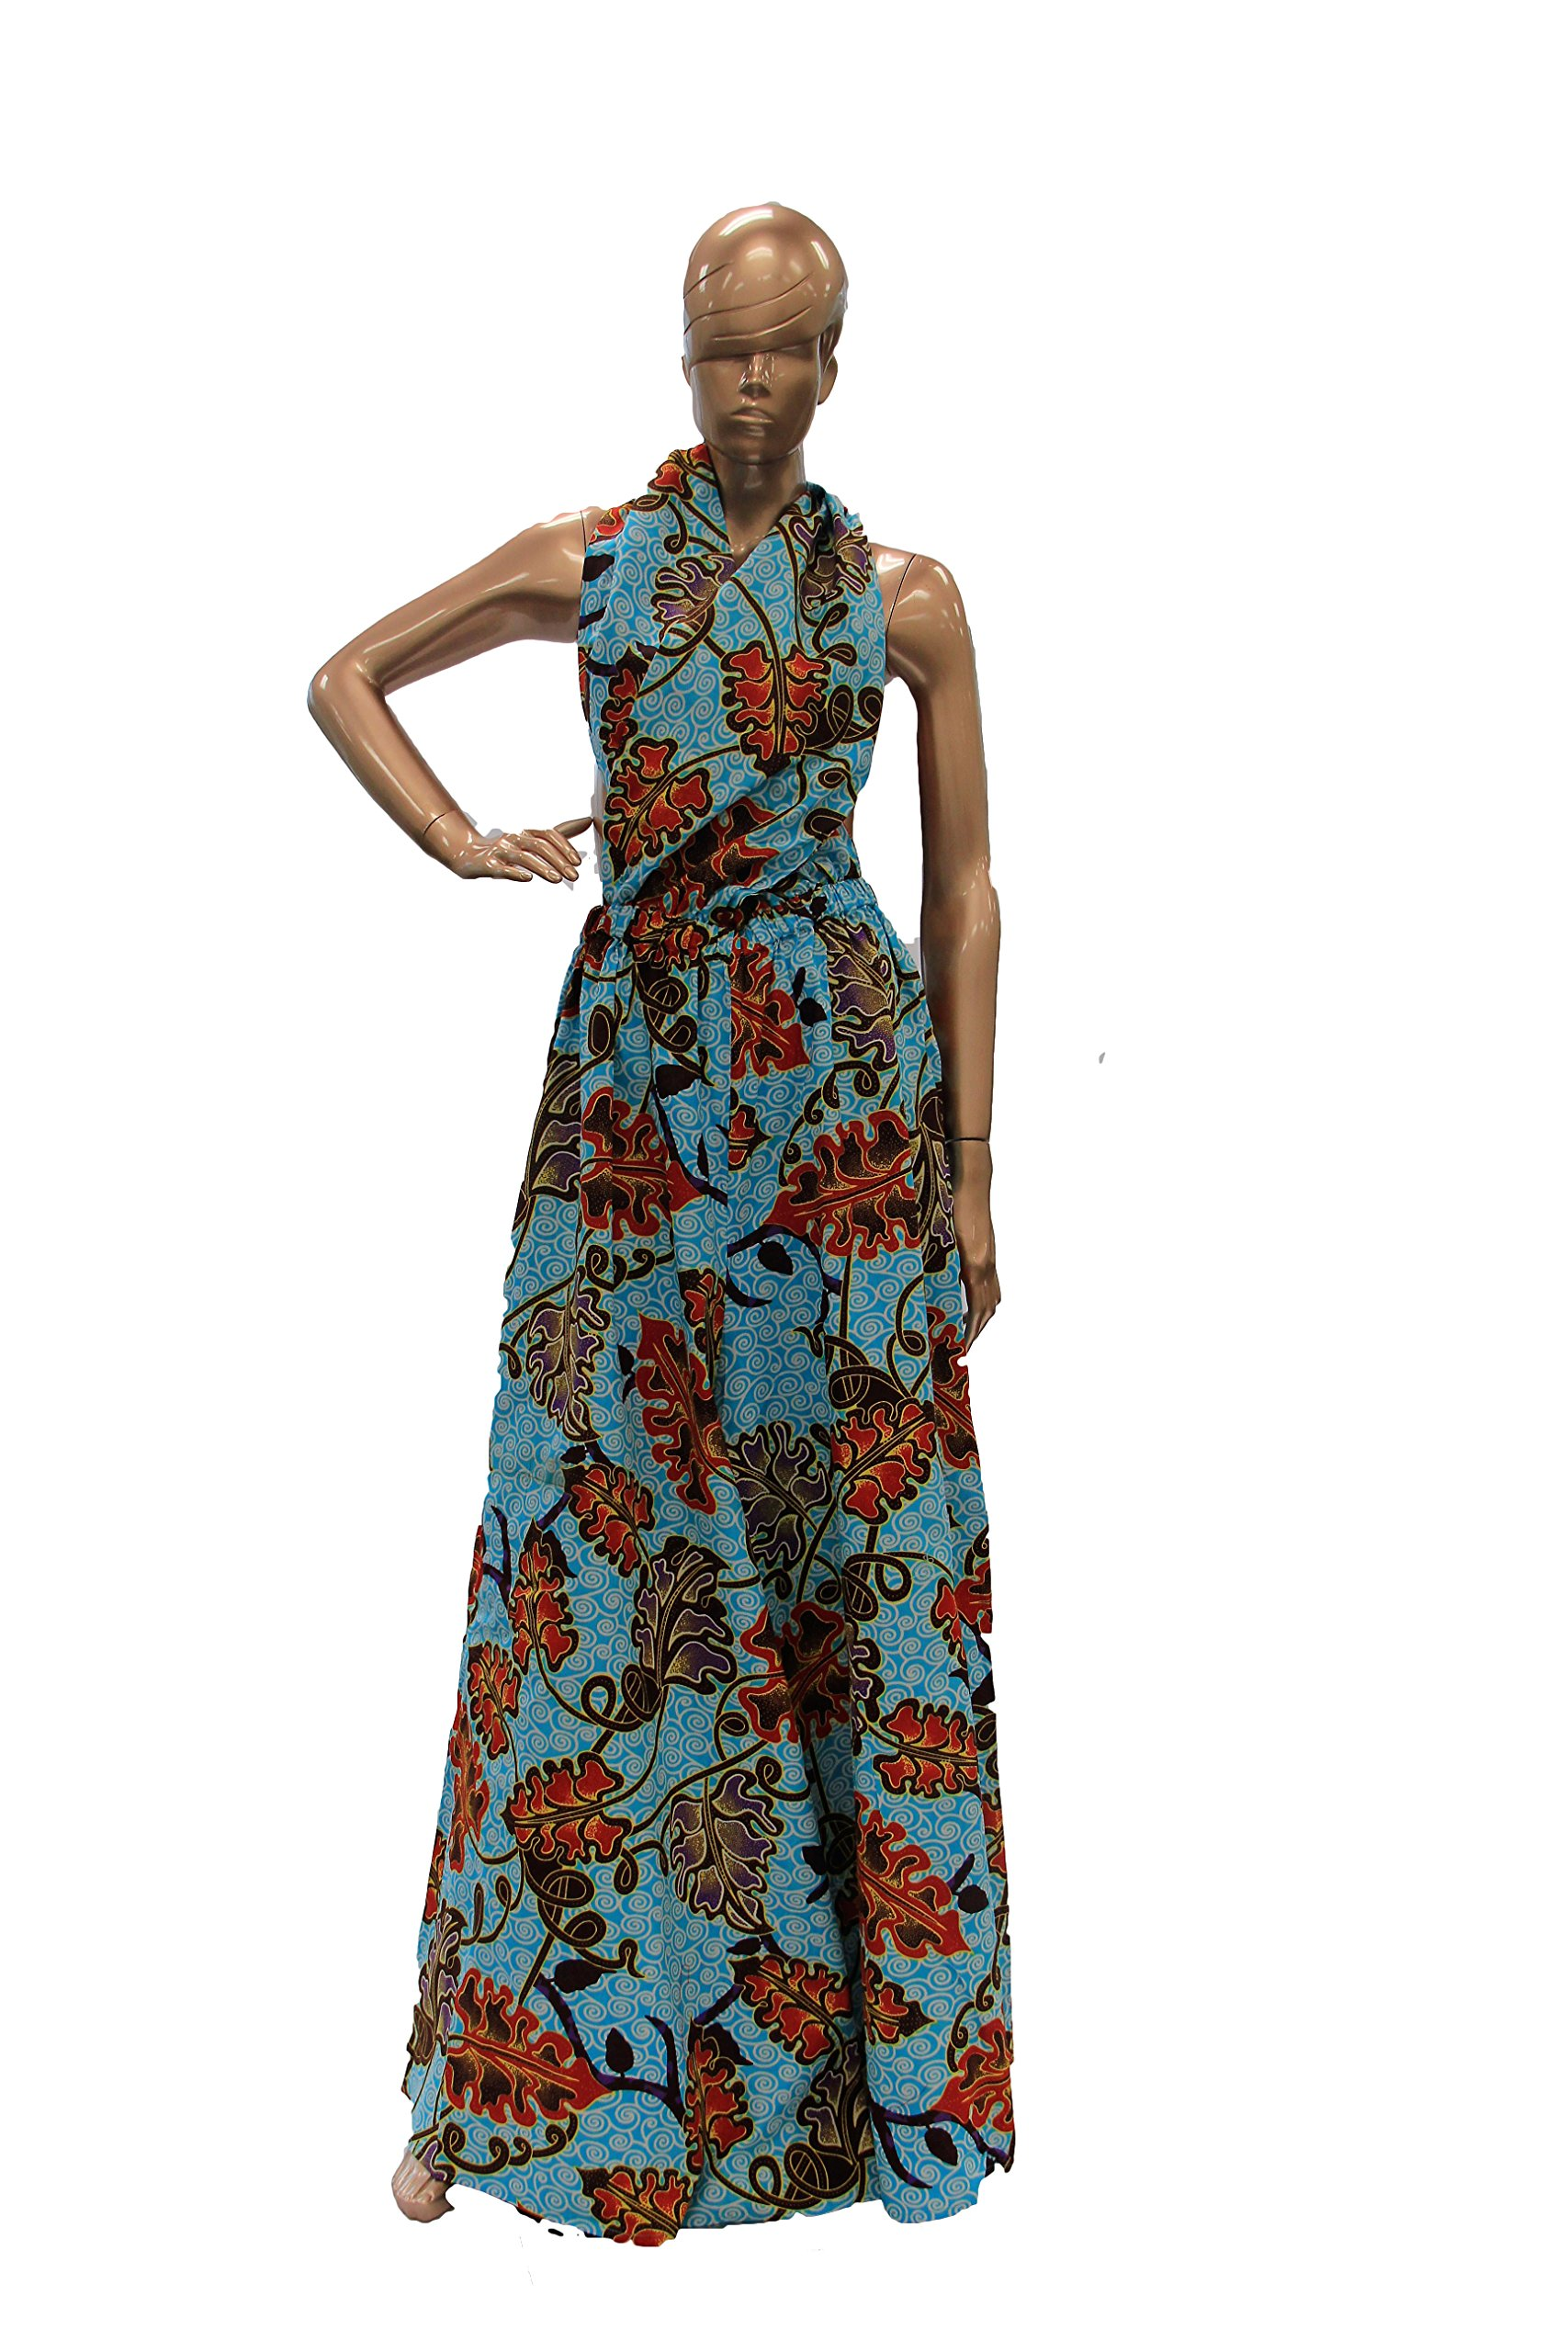 NF African Print Jump Suit-One Size (Print - 2)